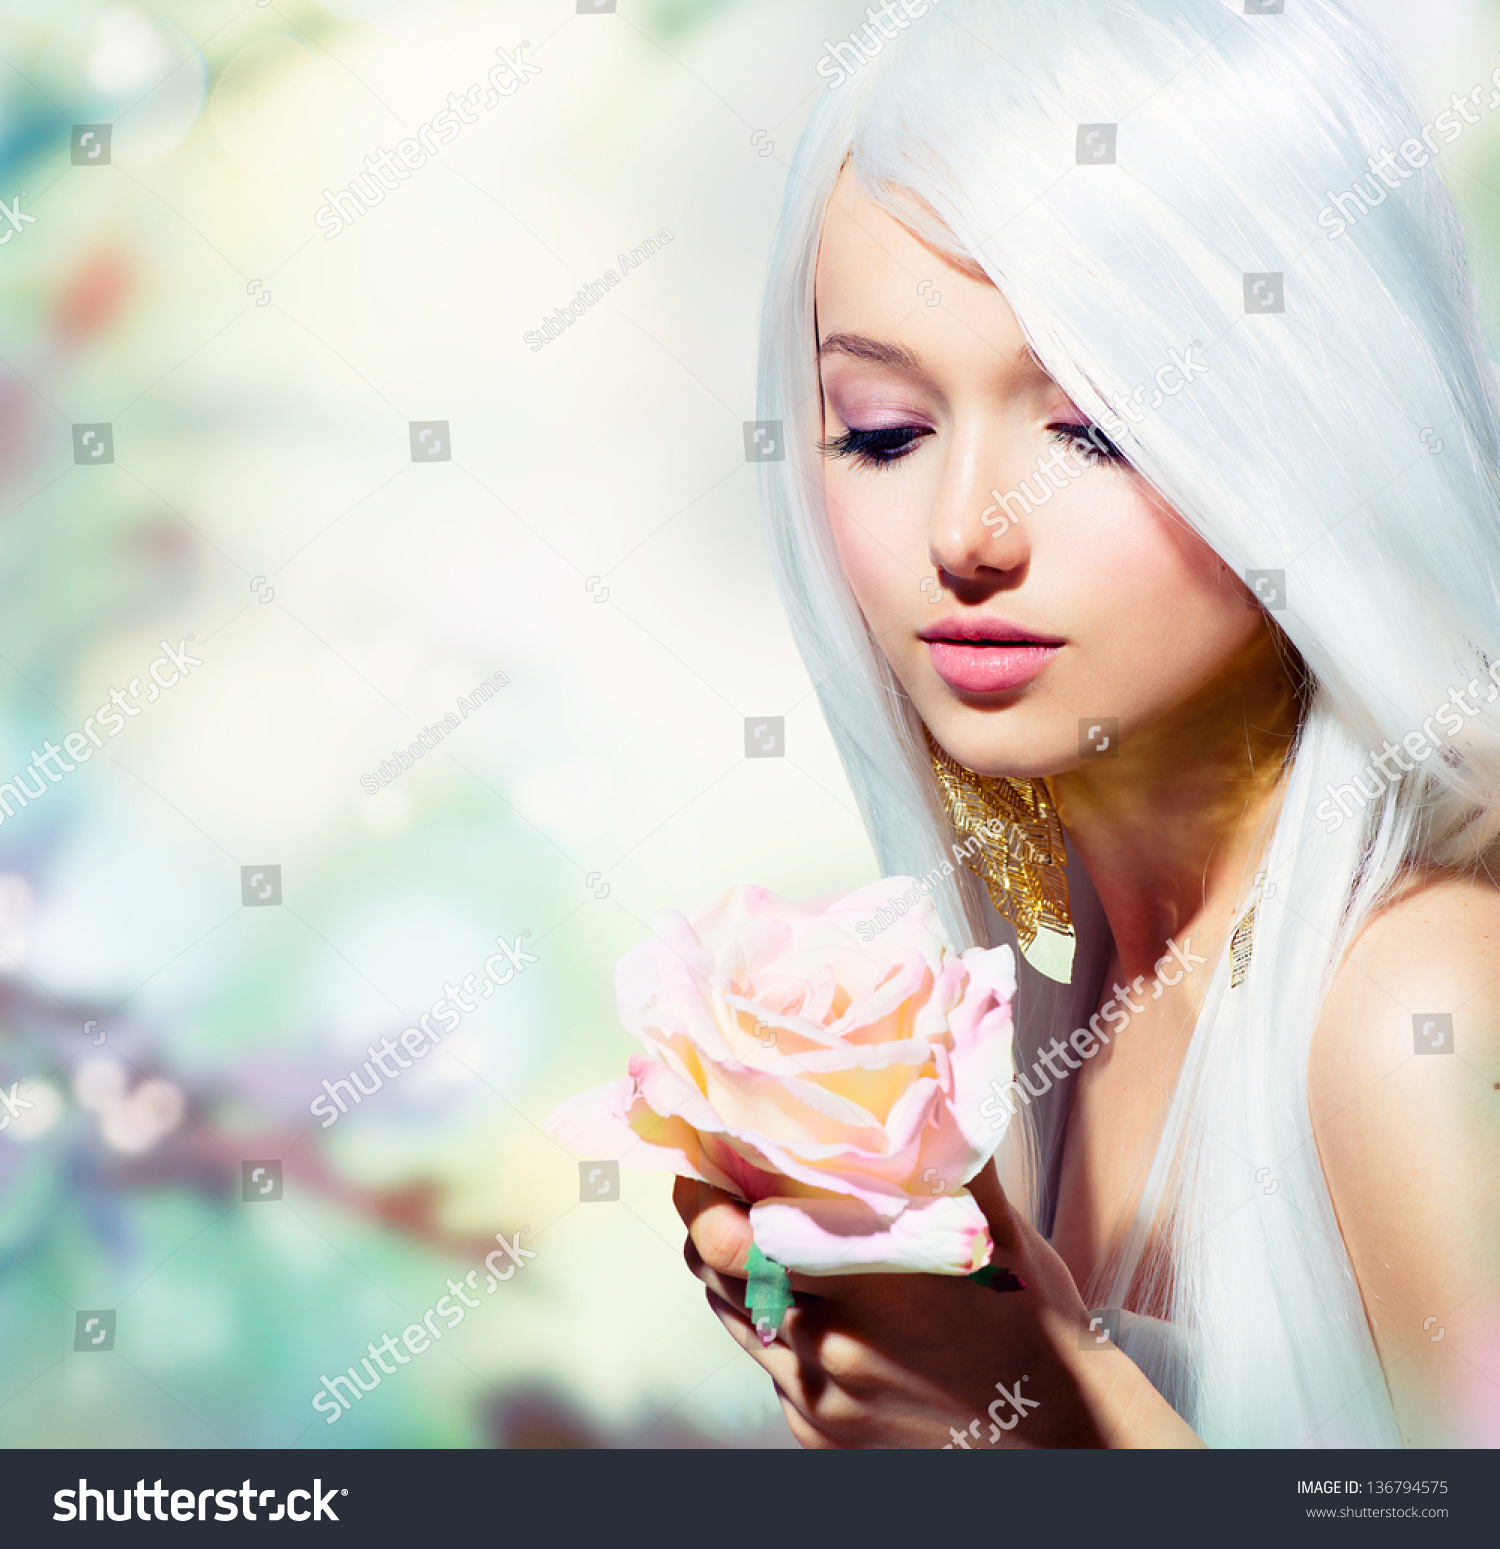 All Anime Characters Wallpaper Beautiful Spring Girl Rose Flower Fantasy Stock Photo